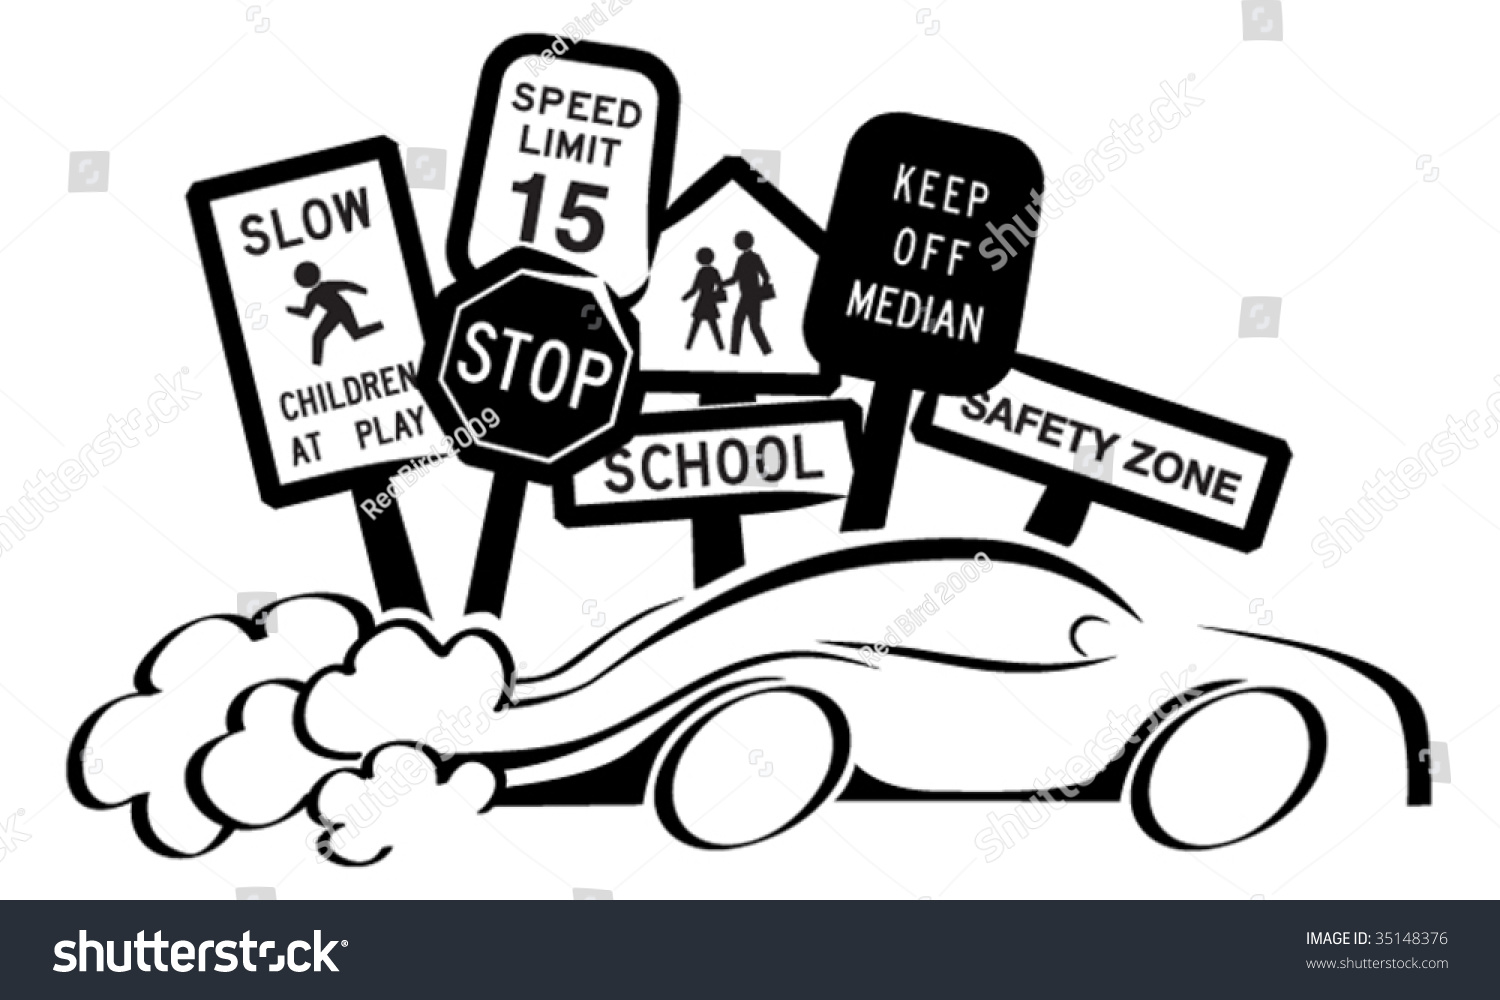 Speeding Car Stock Vector Illustration 35148376 Shutterstock